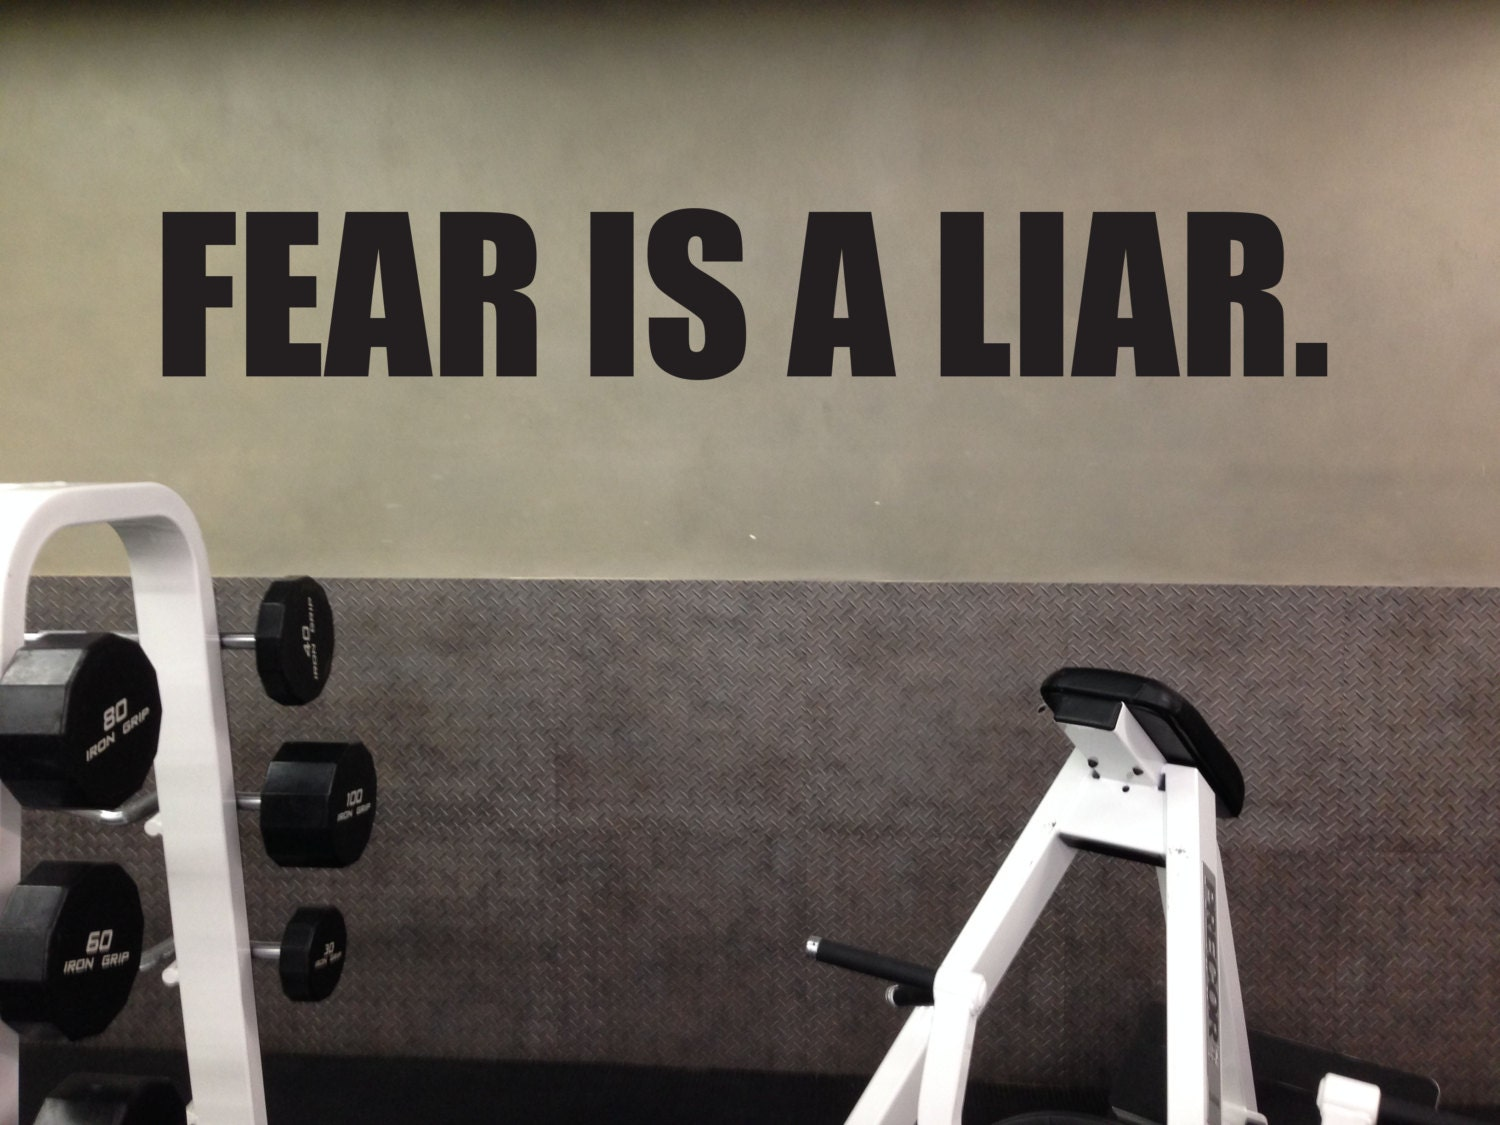 Fitness motivational decal fear is a liar home gym vinyl decal